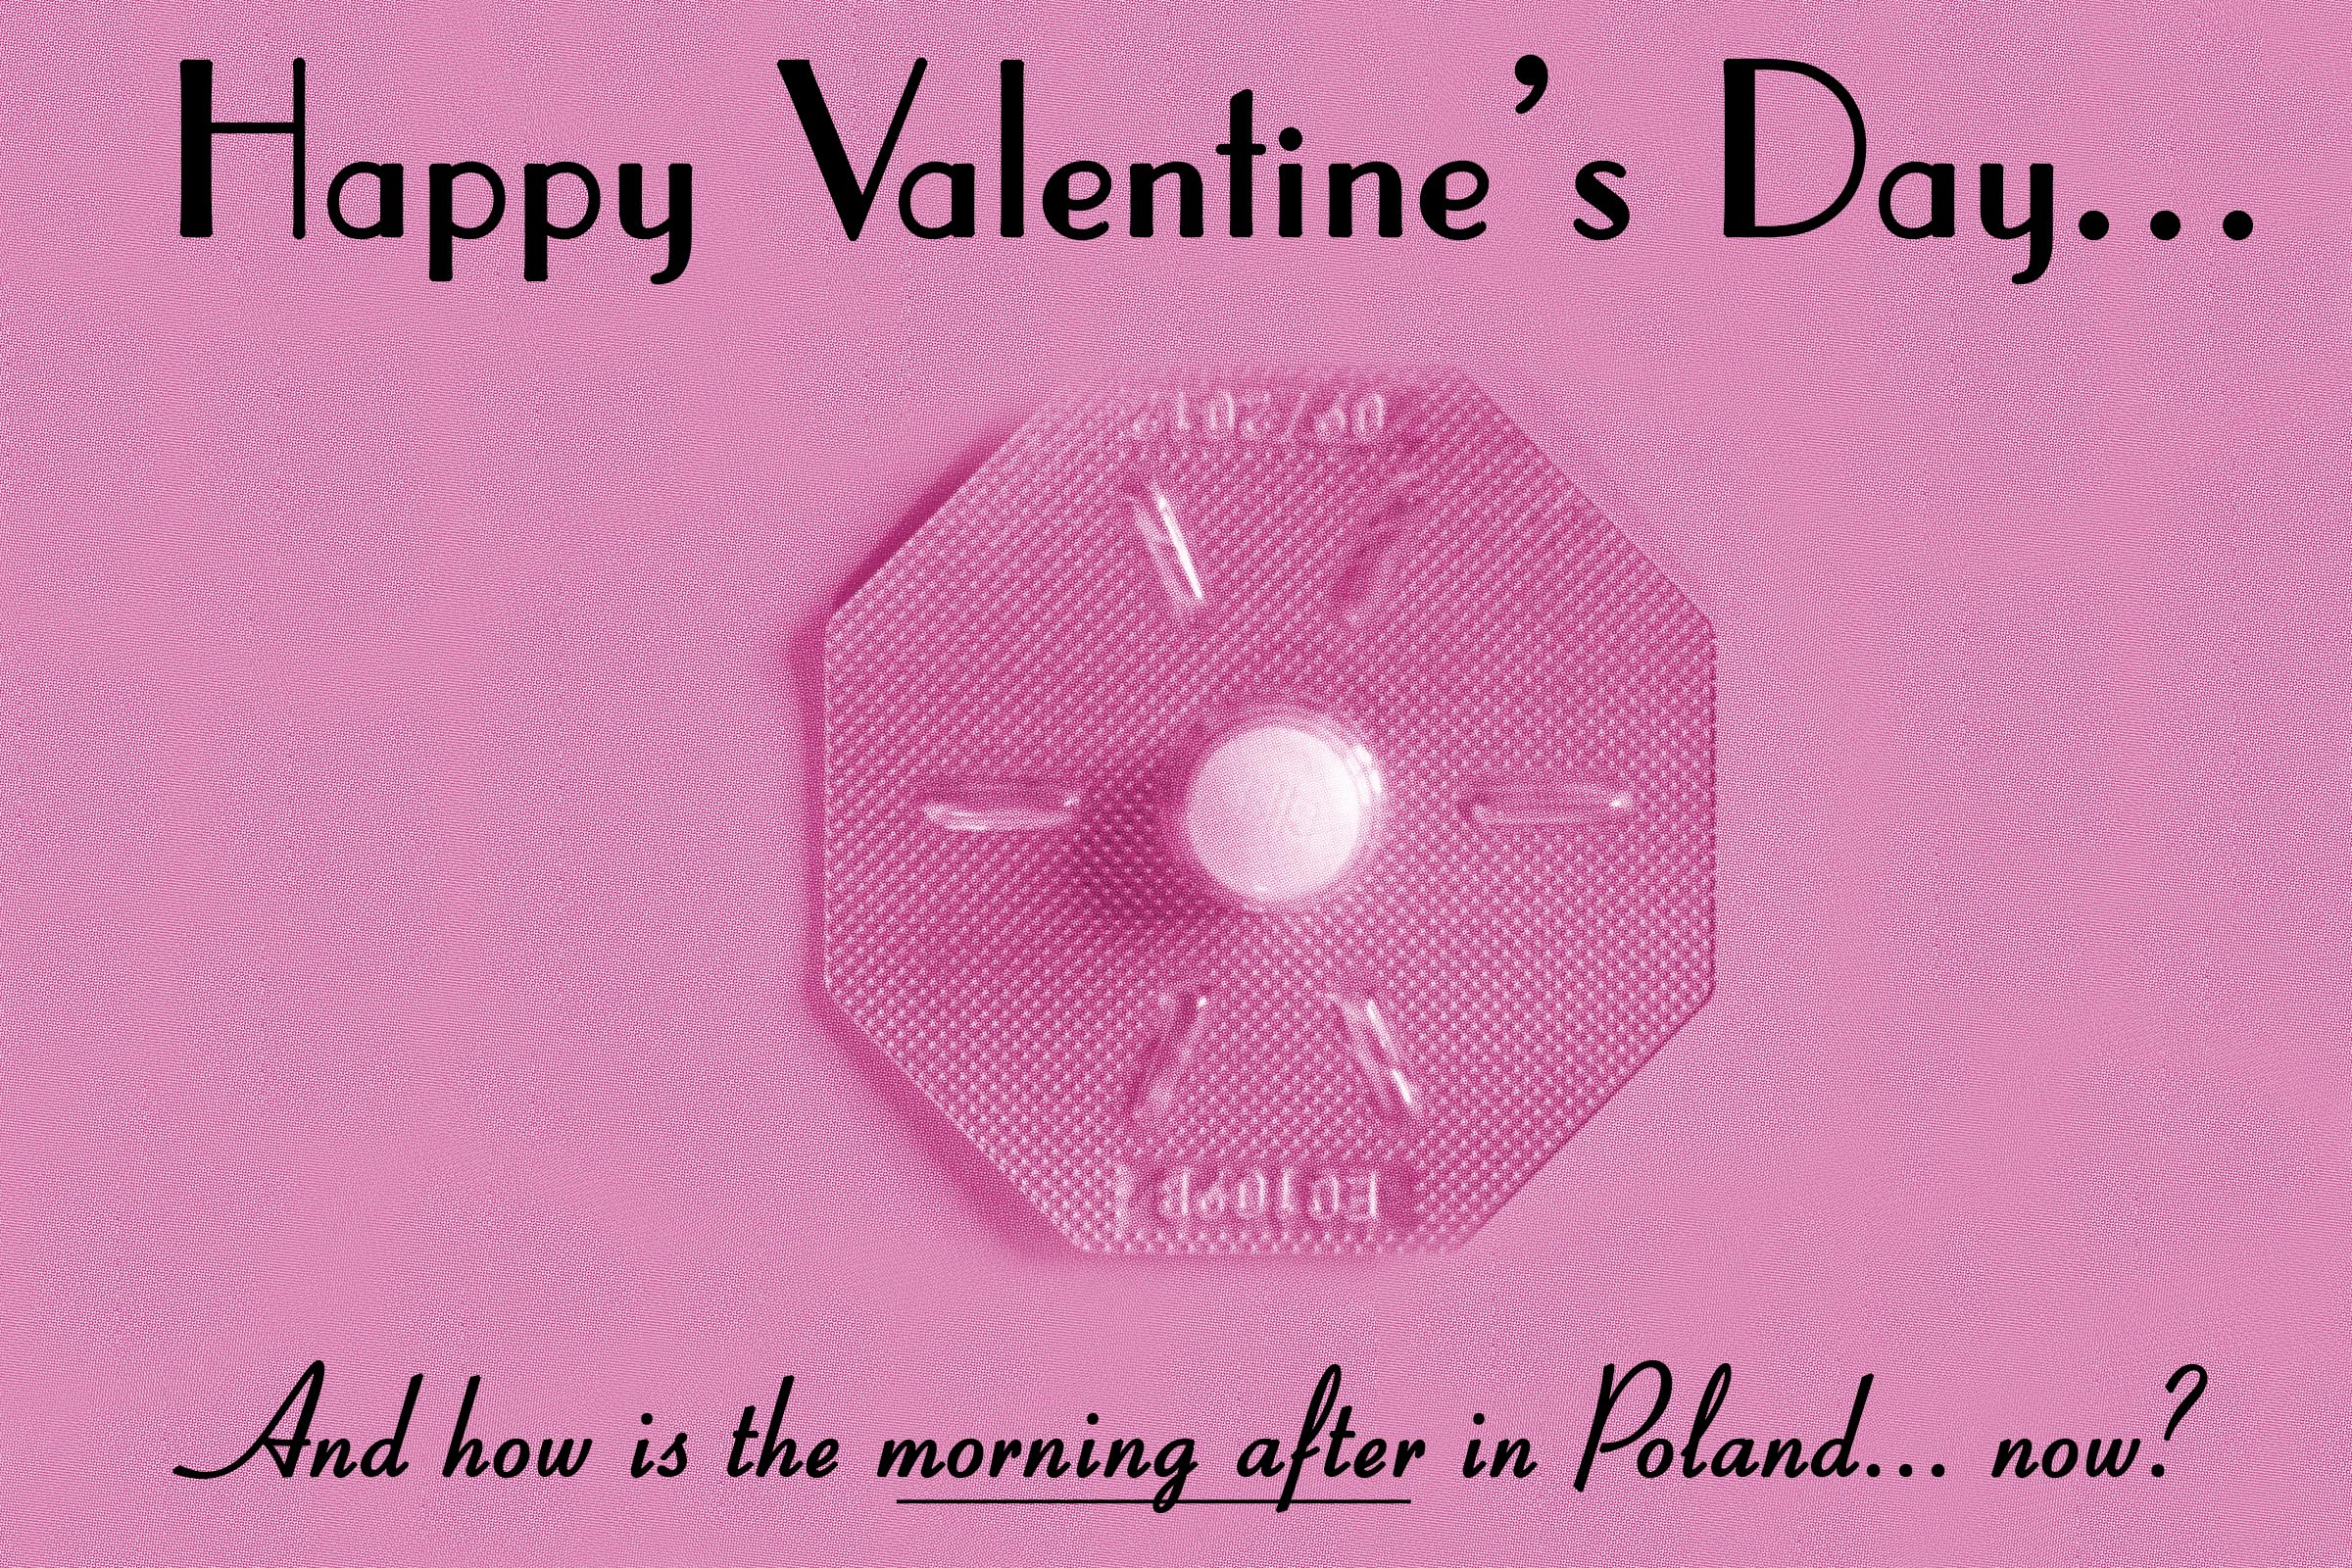 Valentine's Day Gift from the Polish government.